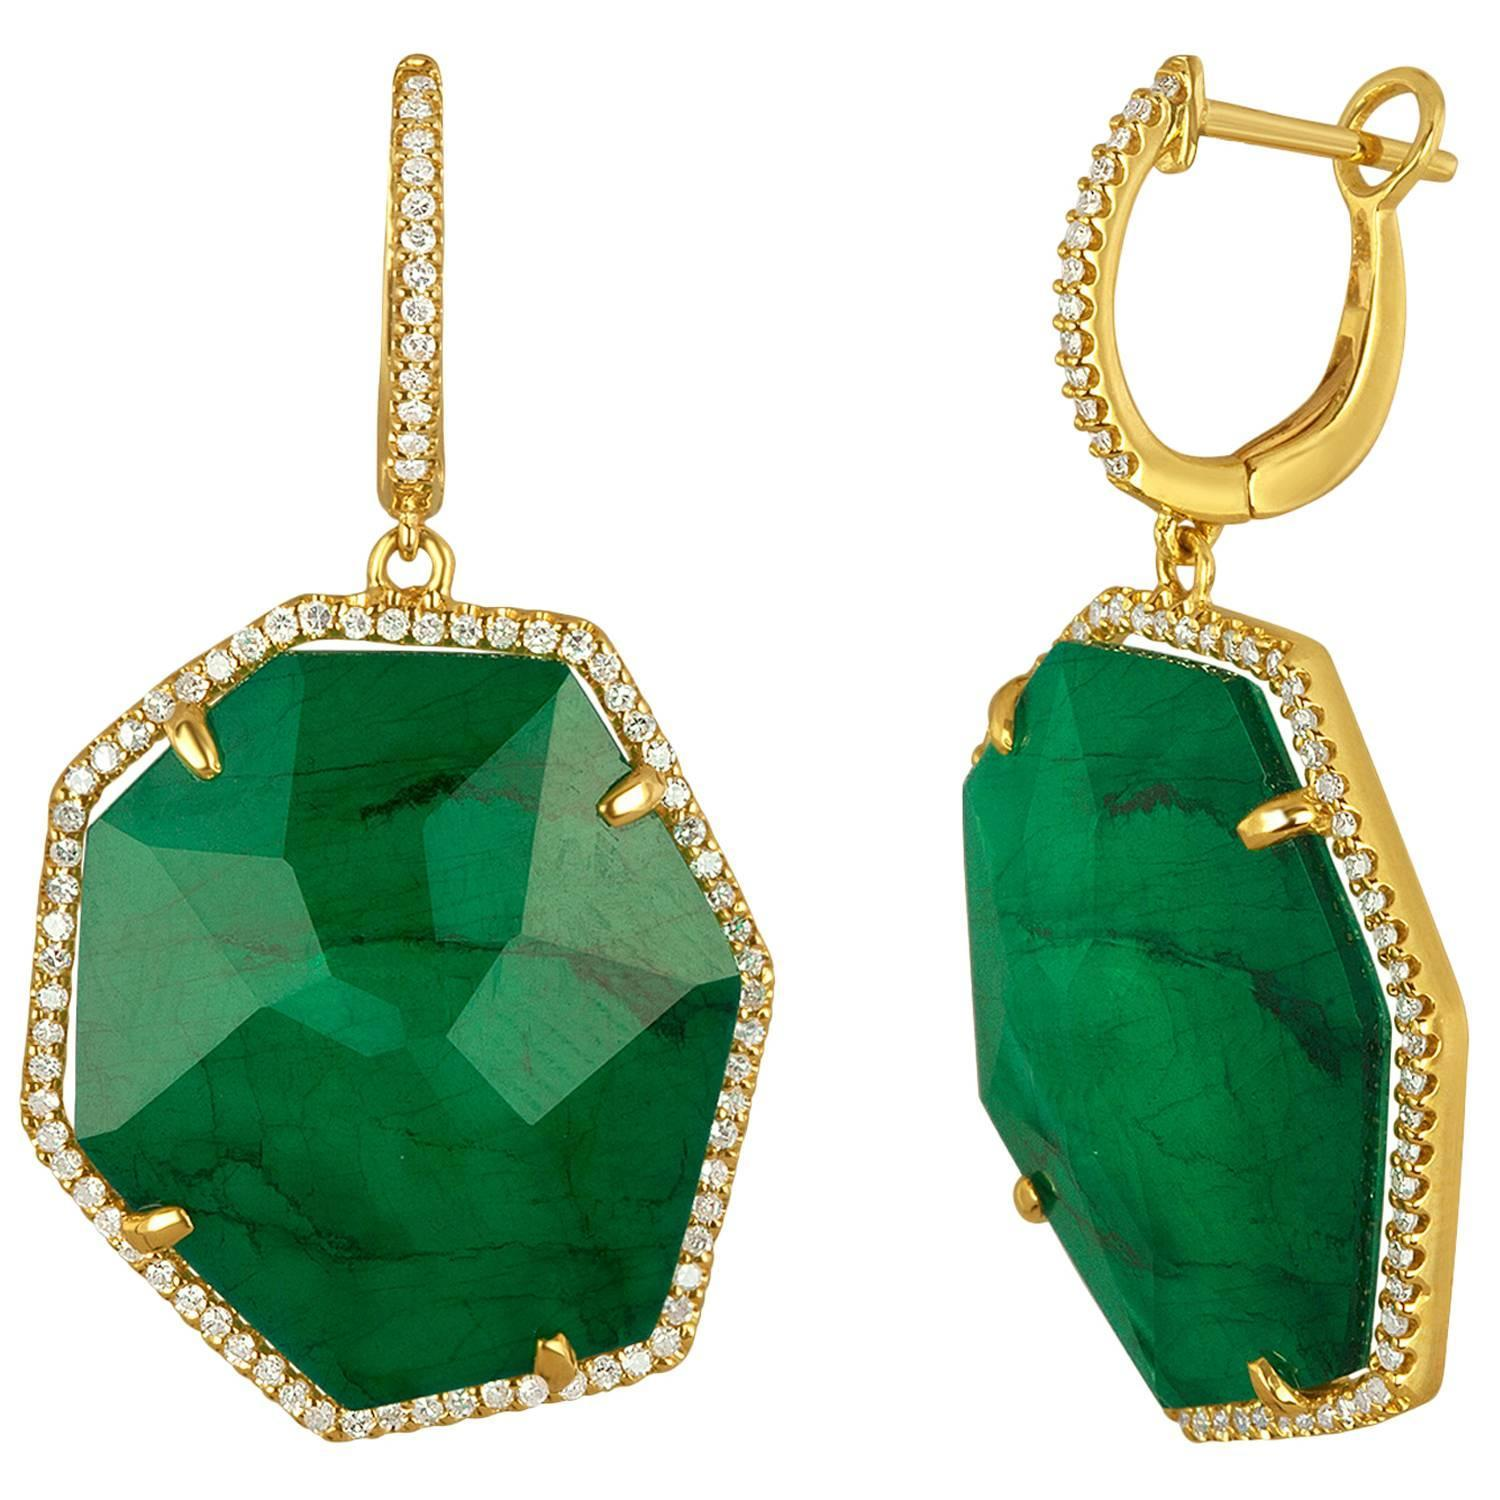 Triplet Emerald MOP and Rock Crystal Dangle Earrings For Sale at 1stdibs